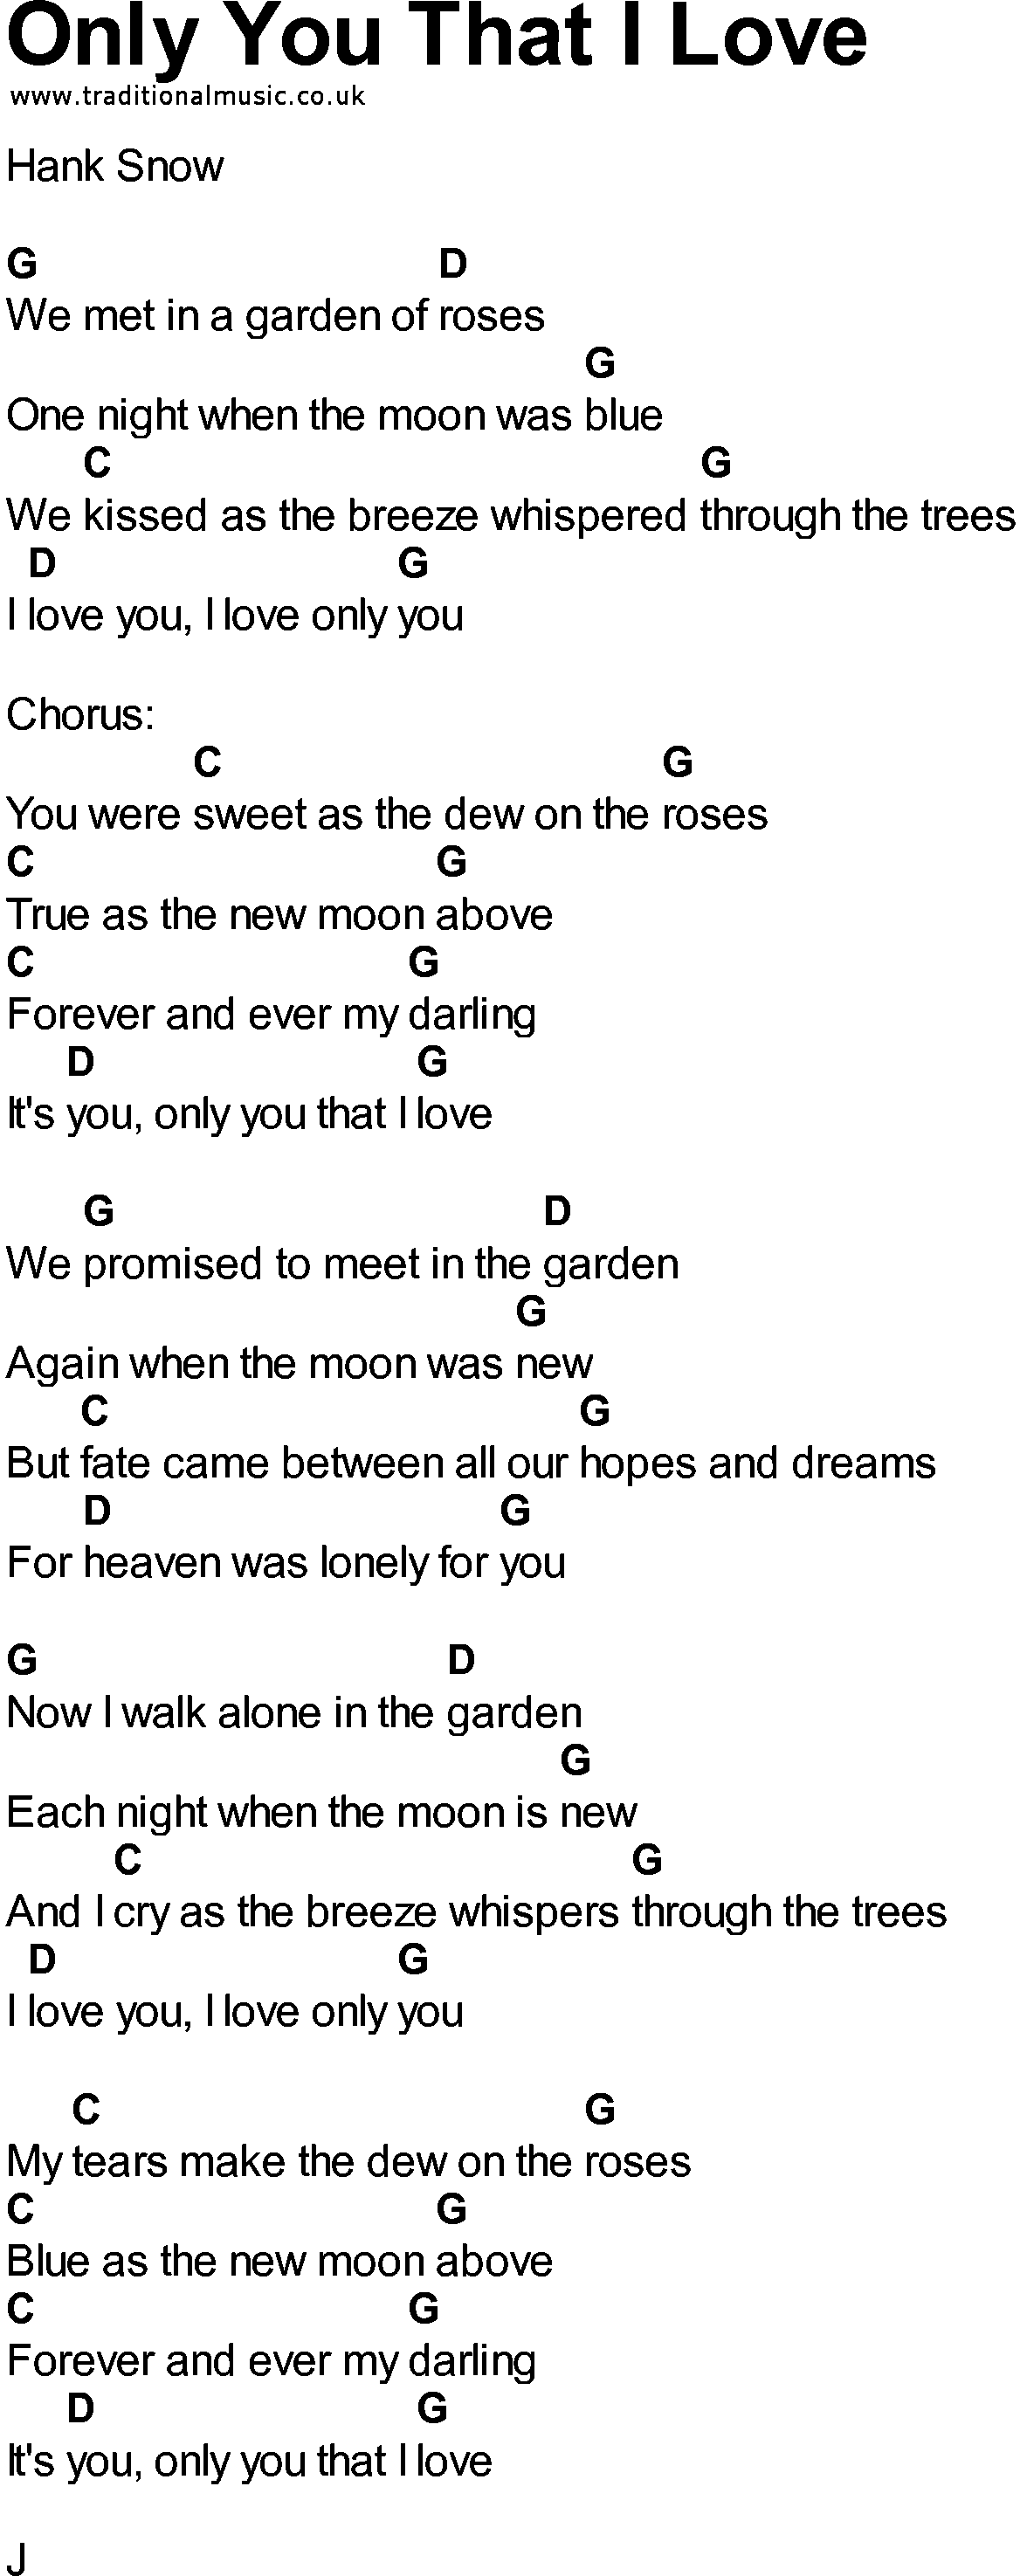 i love you only you lyrics